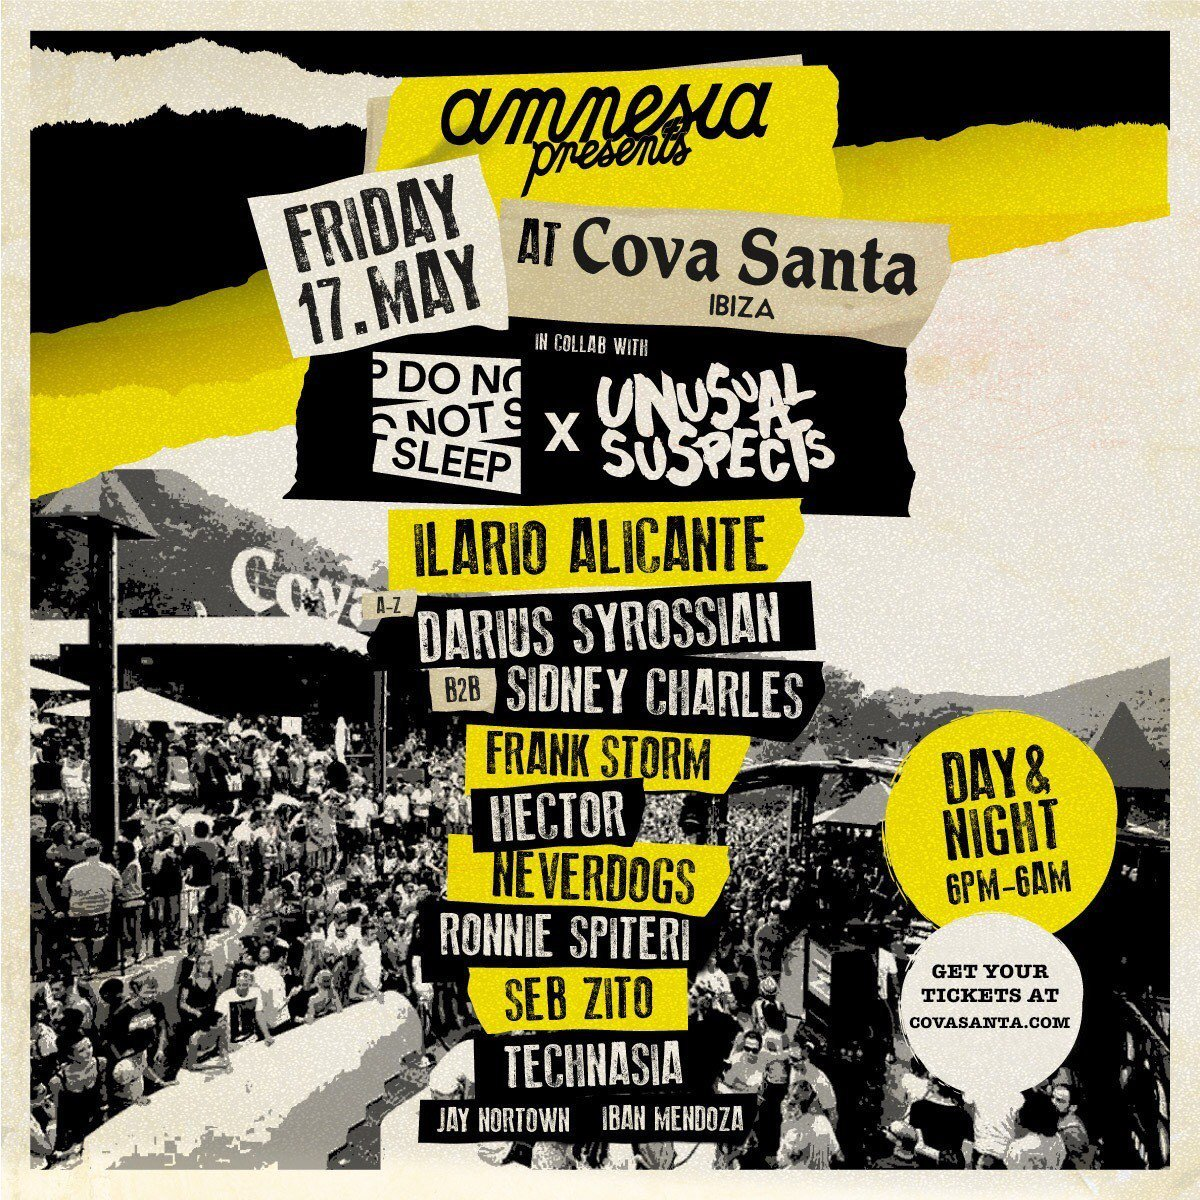 Do Not Sleep Cova Santa Ibiza Friday 17th May 2019